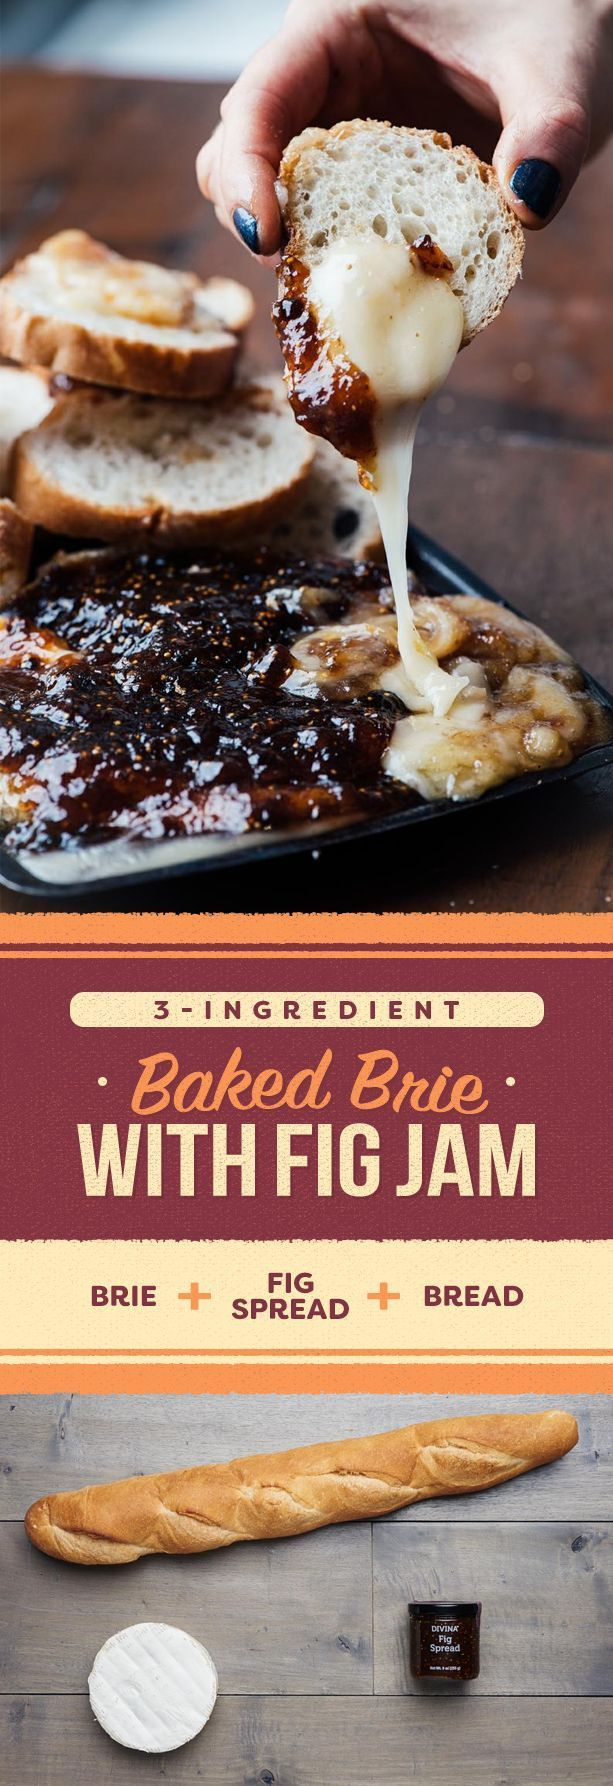 Baked Brie with Fig Jam   9 Easy 3-Ingredient Appetizers To Make For Thanksgiving